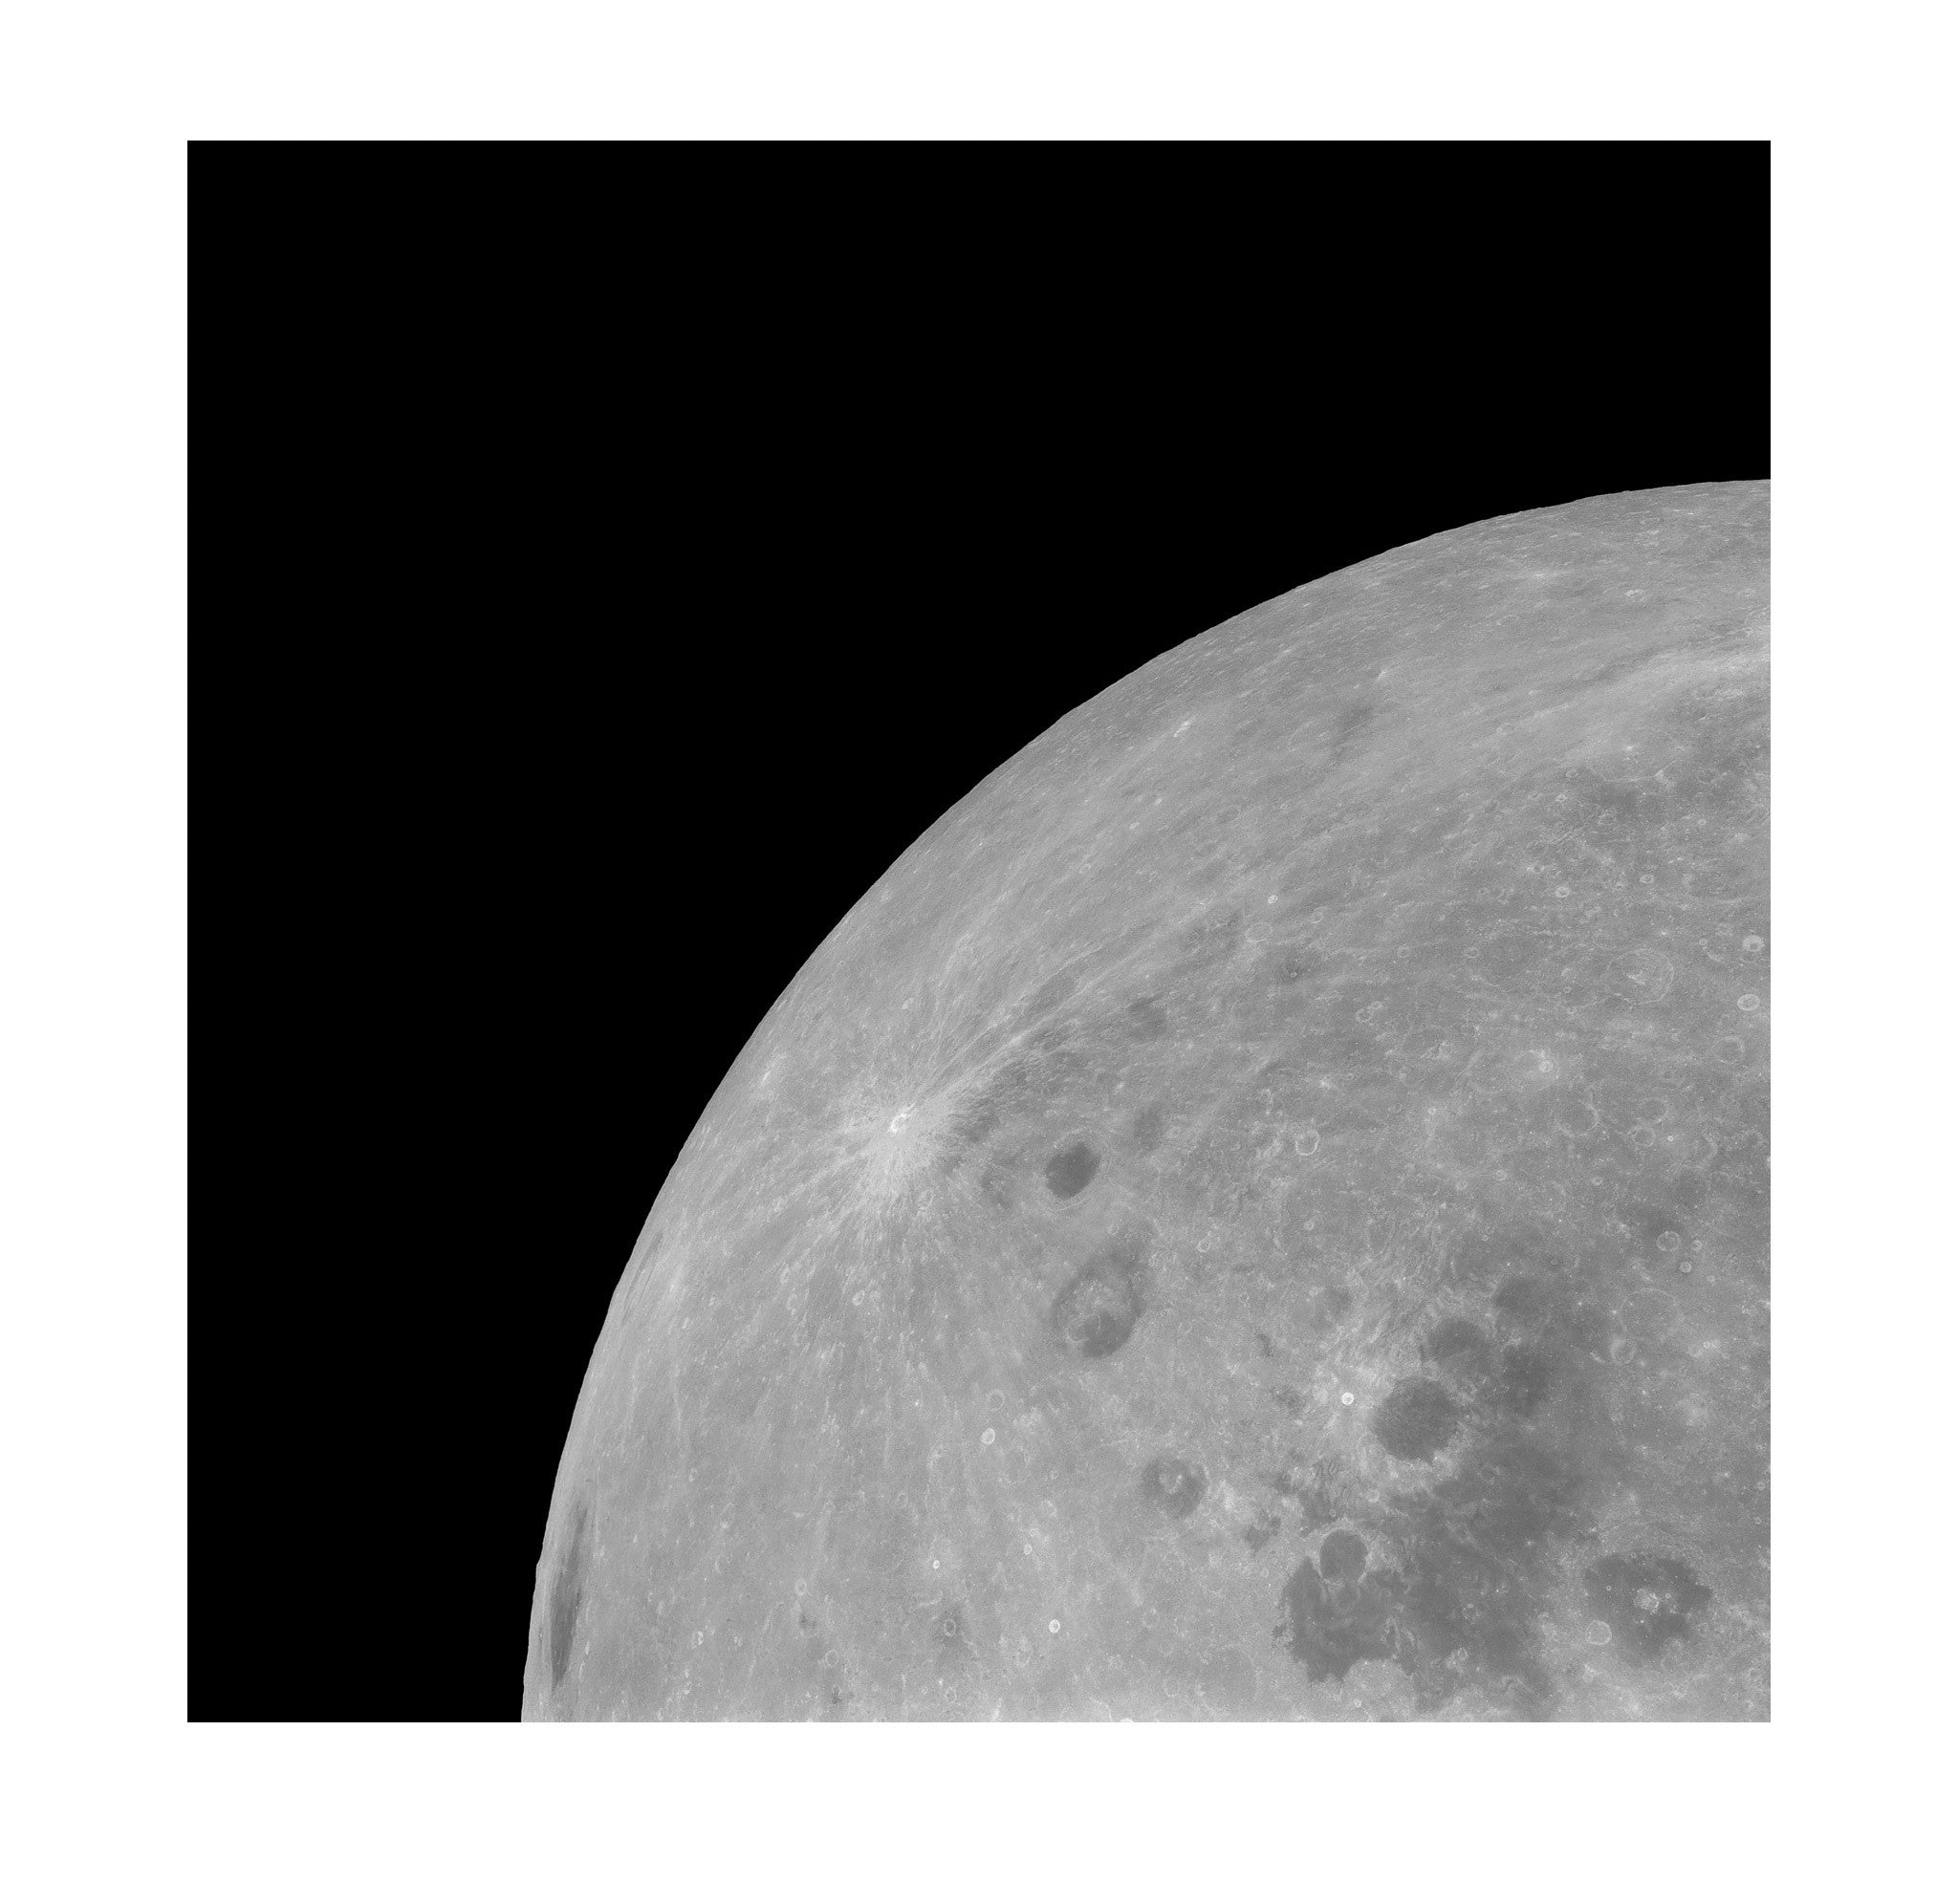 Apollo 11 – Moon